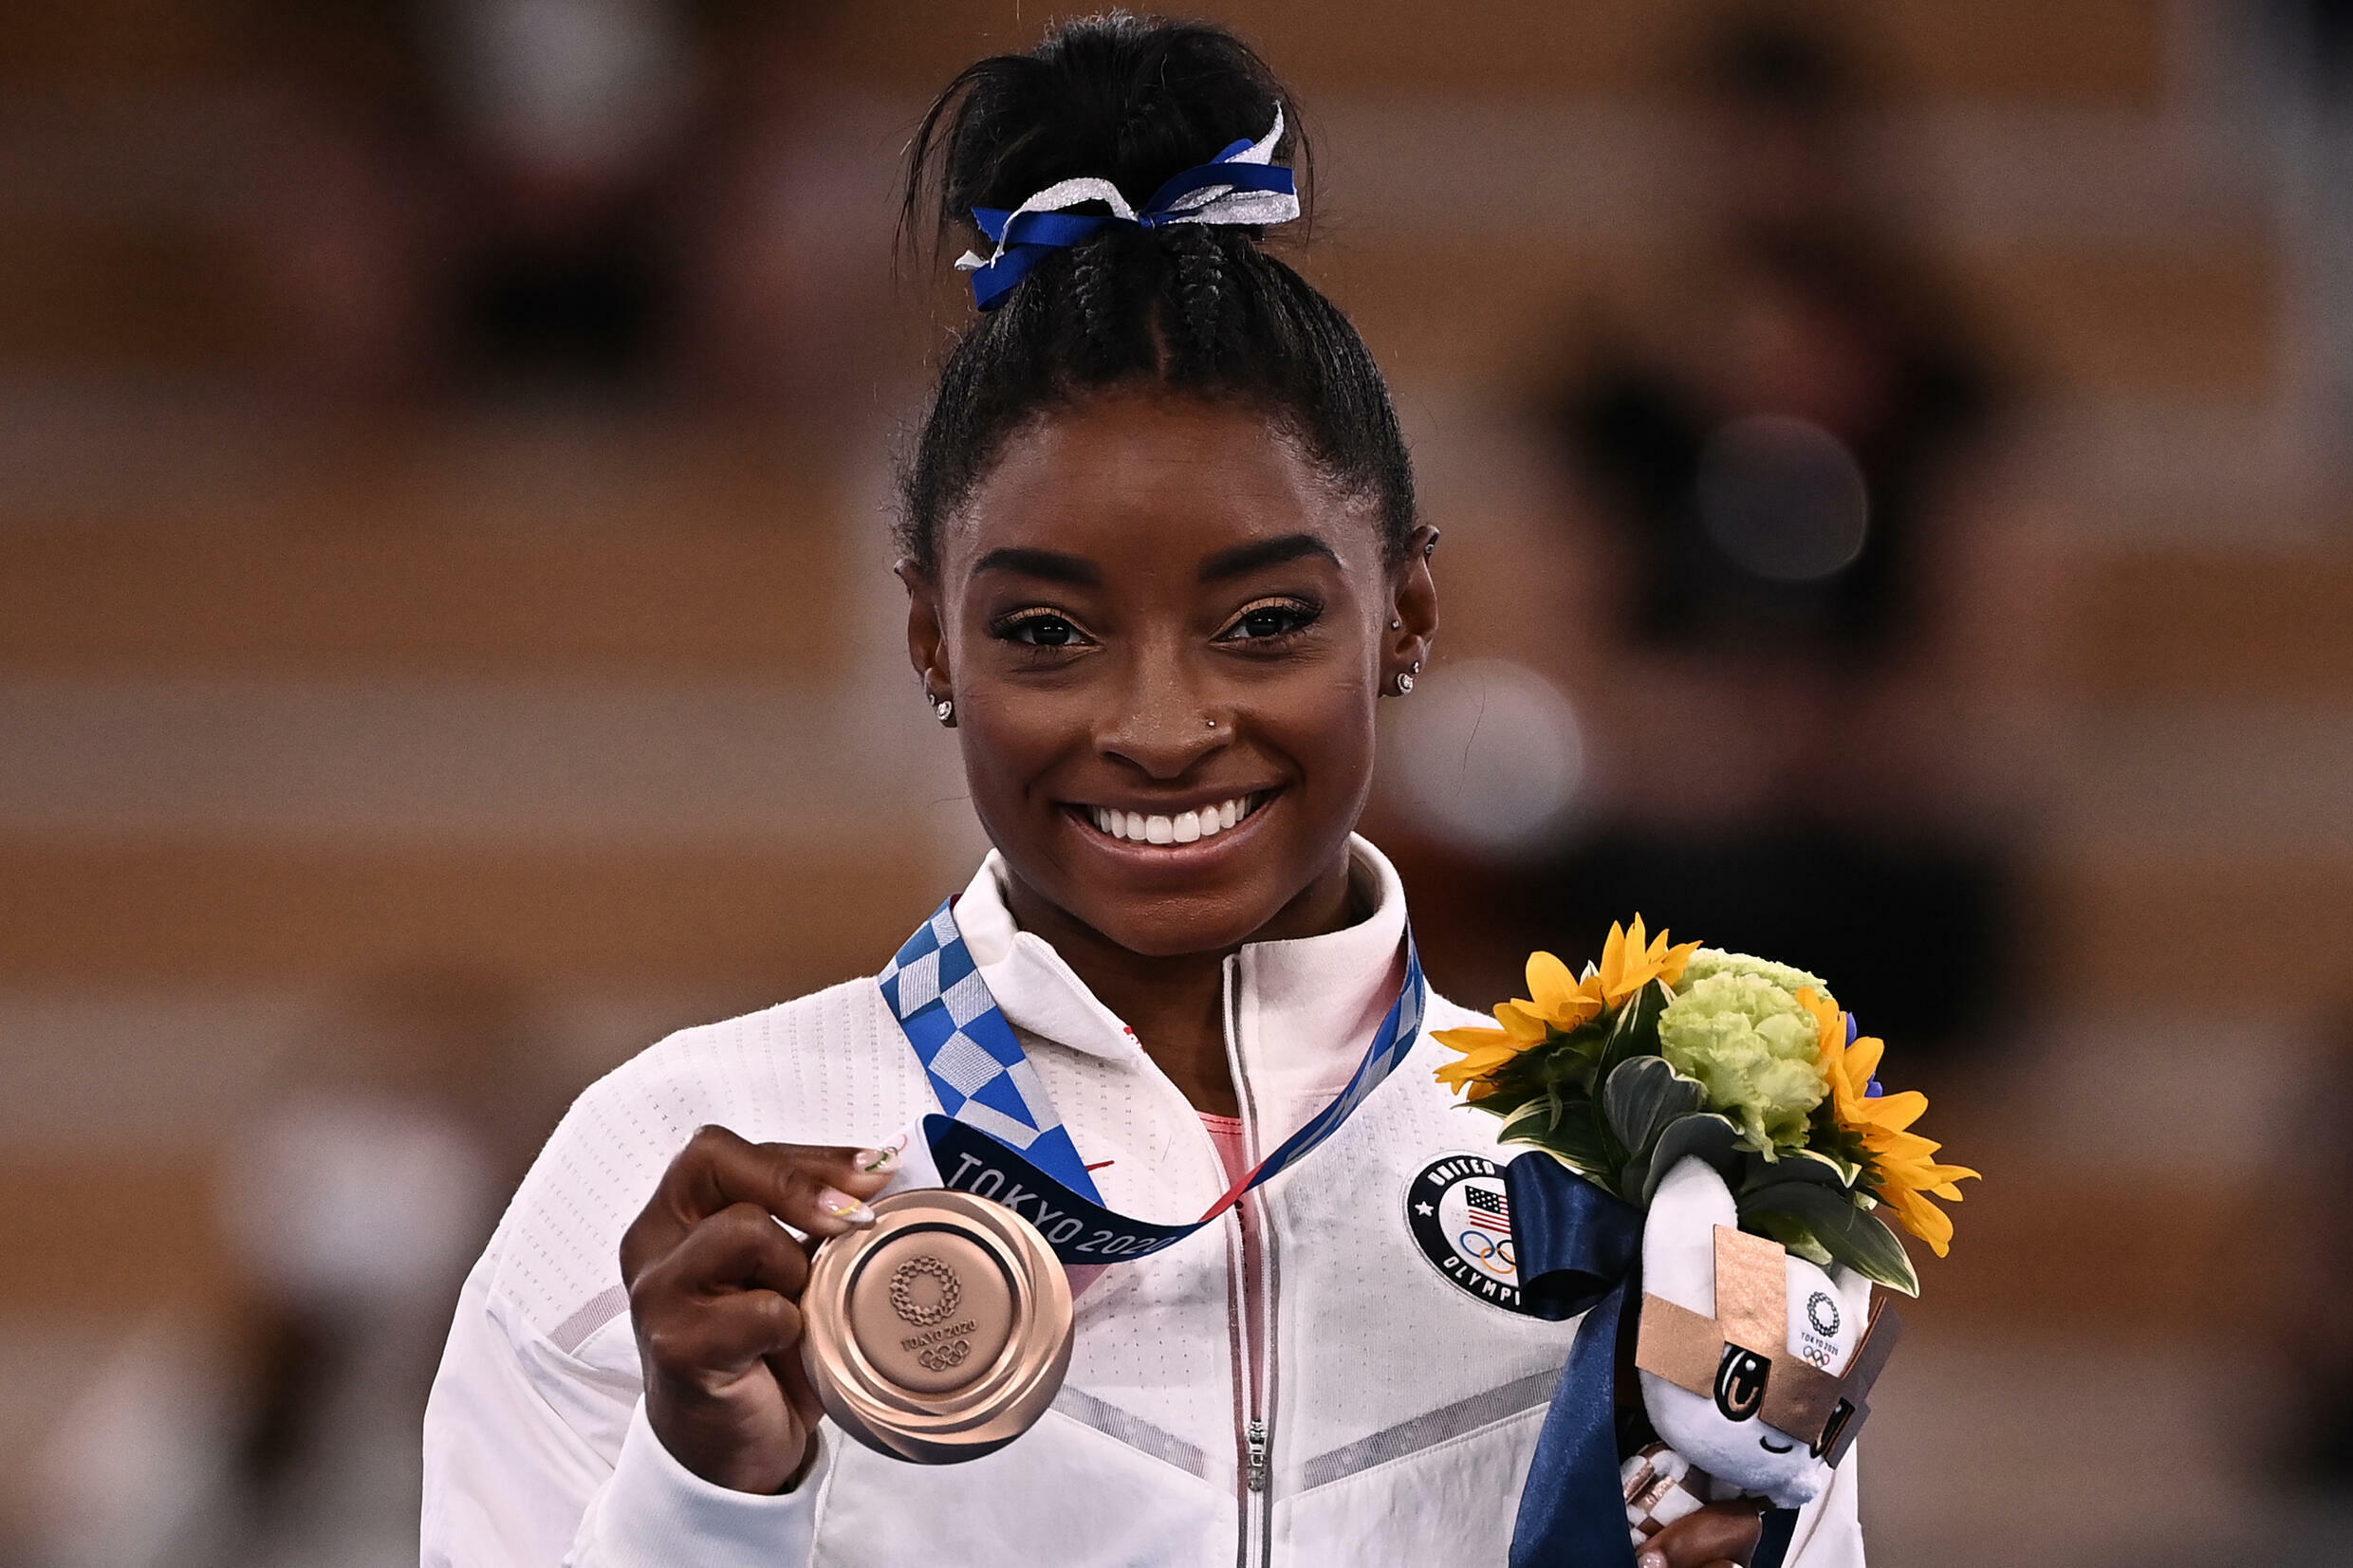 American athlete Simone Biles won a bronze medal for her performance on the beam at the Tokyo Olympics, 3 August 2021